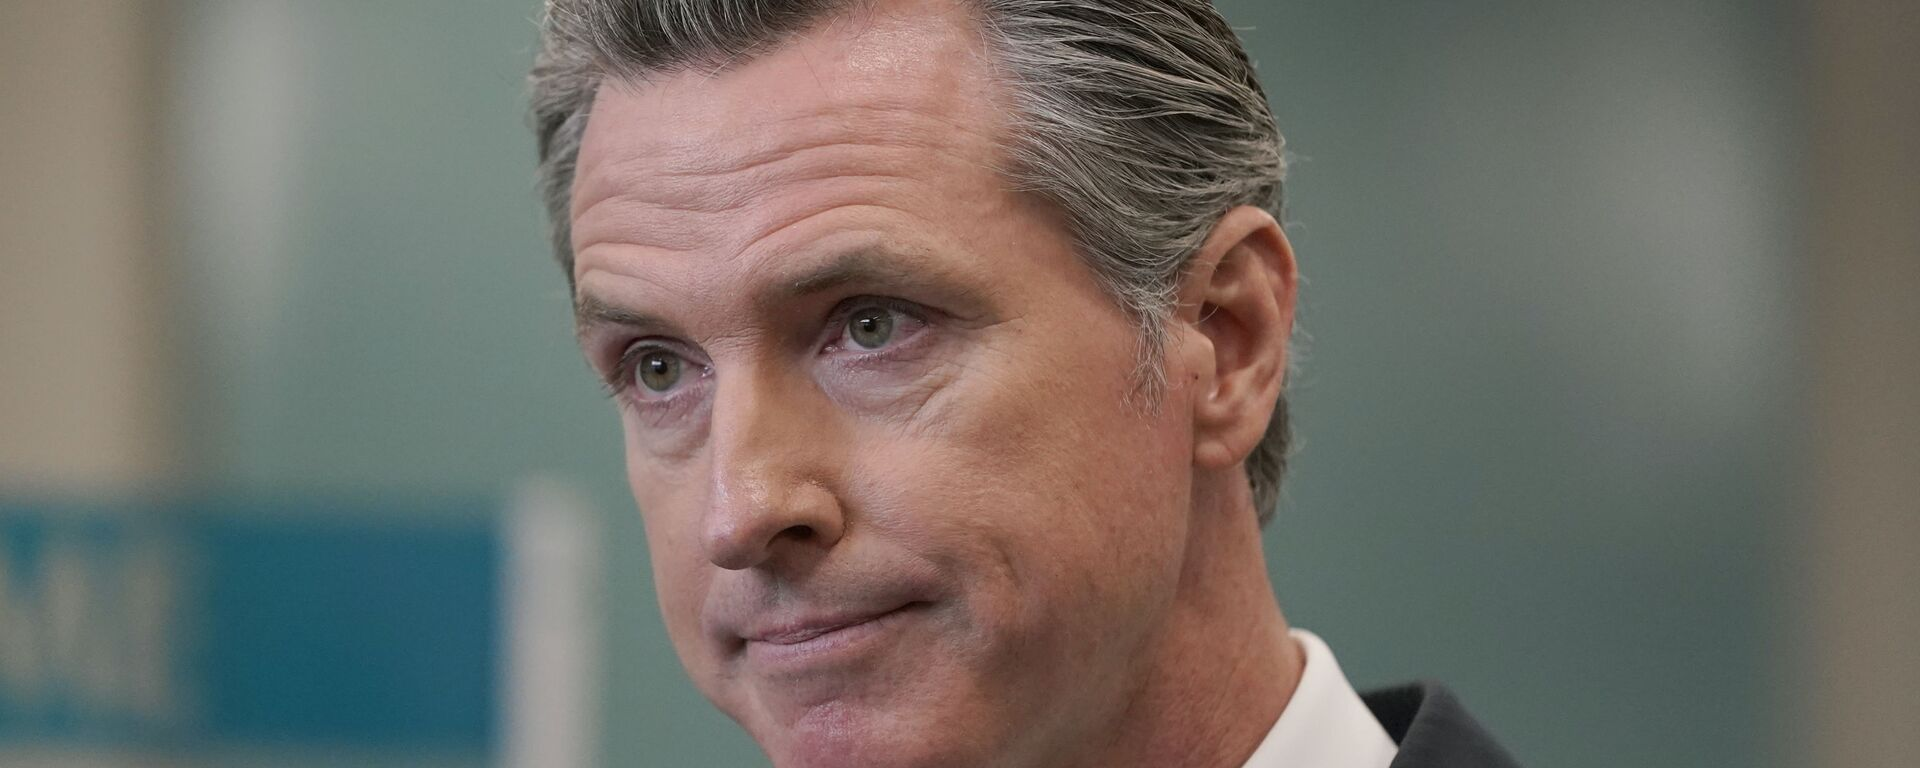 FILE — In this July 26, 2021, file photo, Gov. Gavin Newsom appears at a news conference in Oakland, Calif. Supporters of the effort to recall Newsom are asking a court to prohibit him from calling the effort sRepublican recall in the state's official voter guide. The lawsuit was filed by July 30, 2021, by Orrin Heatlie, the Republican activist who launched the recall effort. - Sputnik International, 1920, 08.09.2021